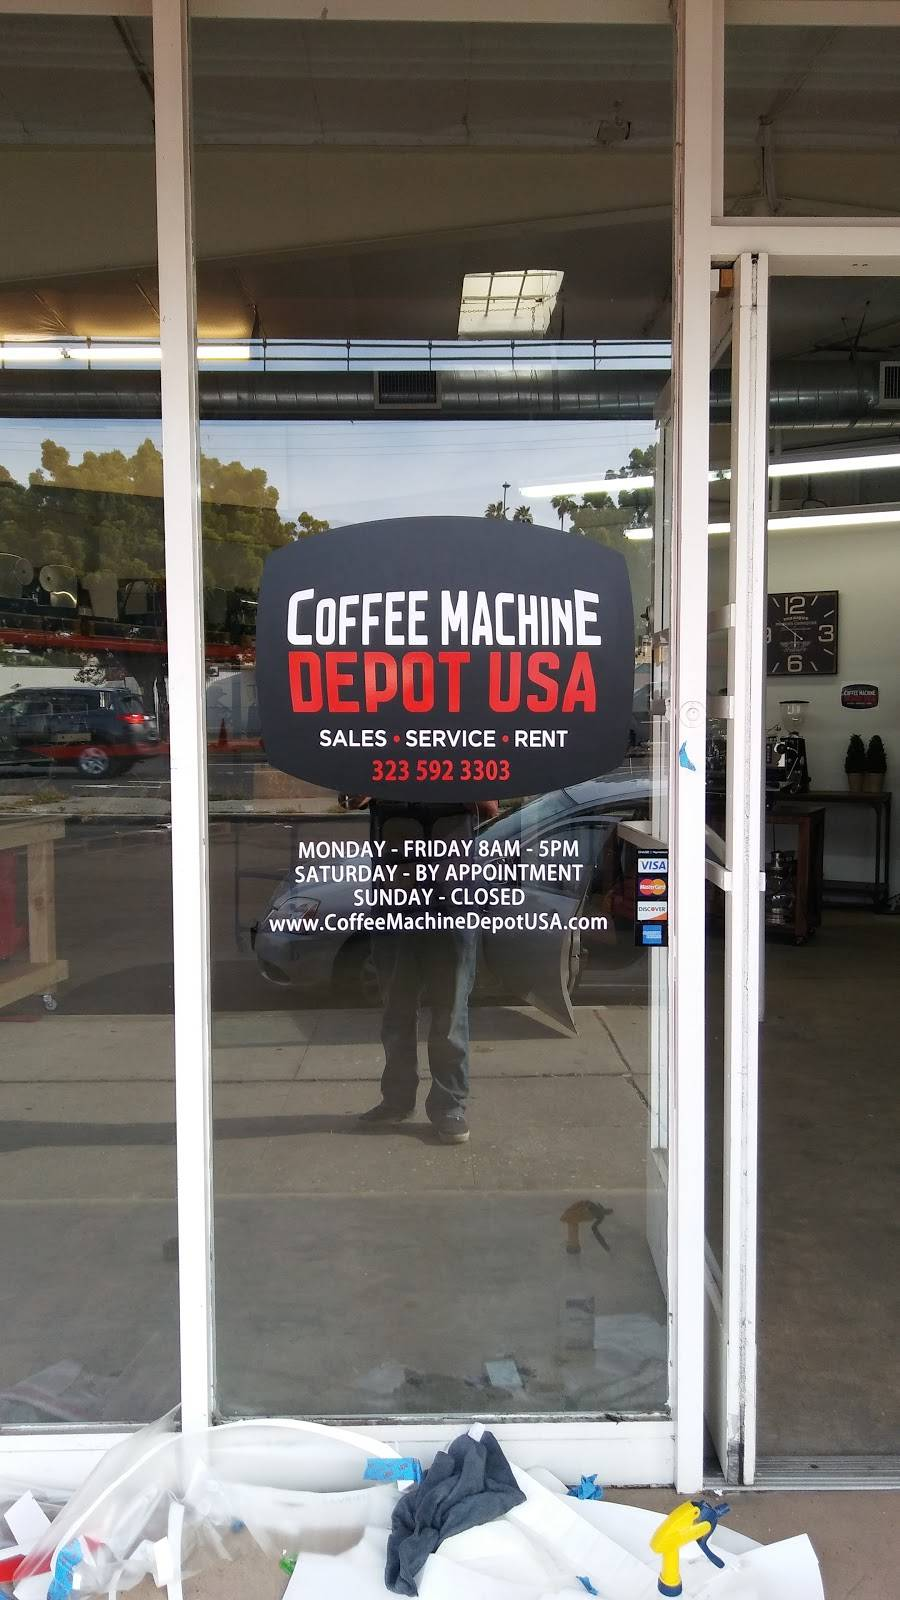 Epic Signs & Graphics Inc - store  | Photo 8 of 9 | Address: 8511 Whitaker St, Buena Park, CA 90621, USA | Phone: (714) 752-6974